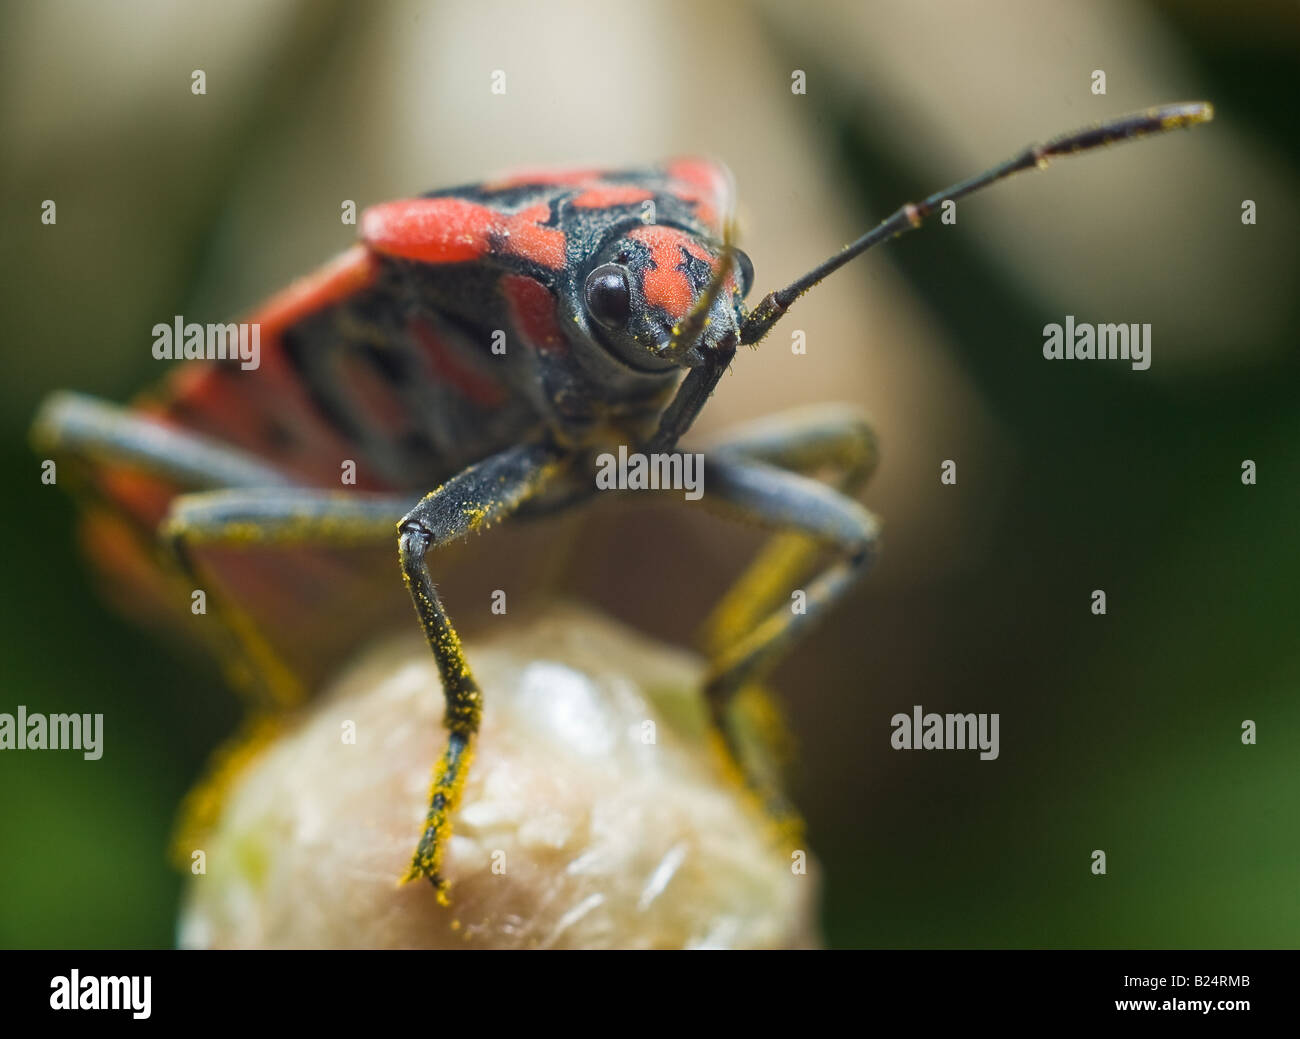 A red bug sits on a flower bud in Mallorca - Stock Image